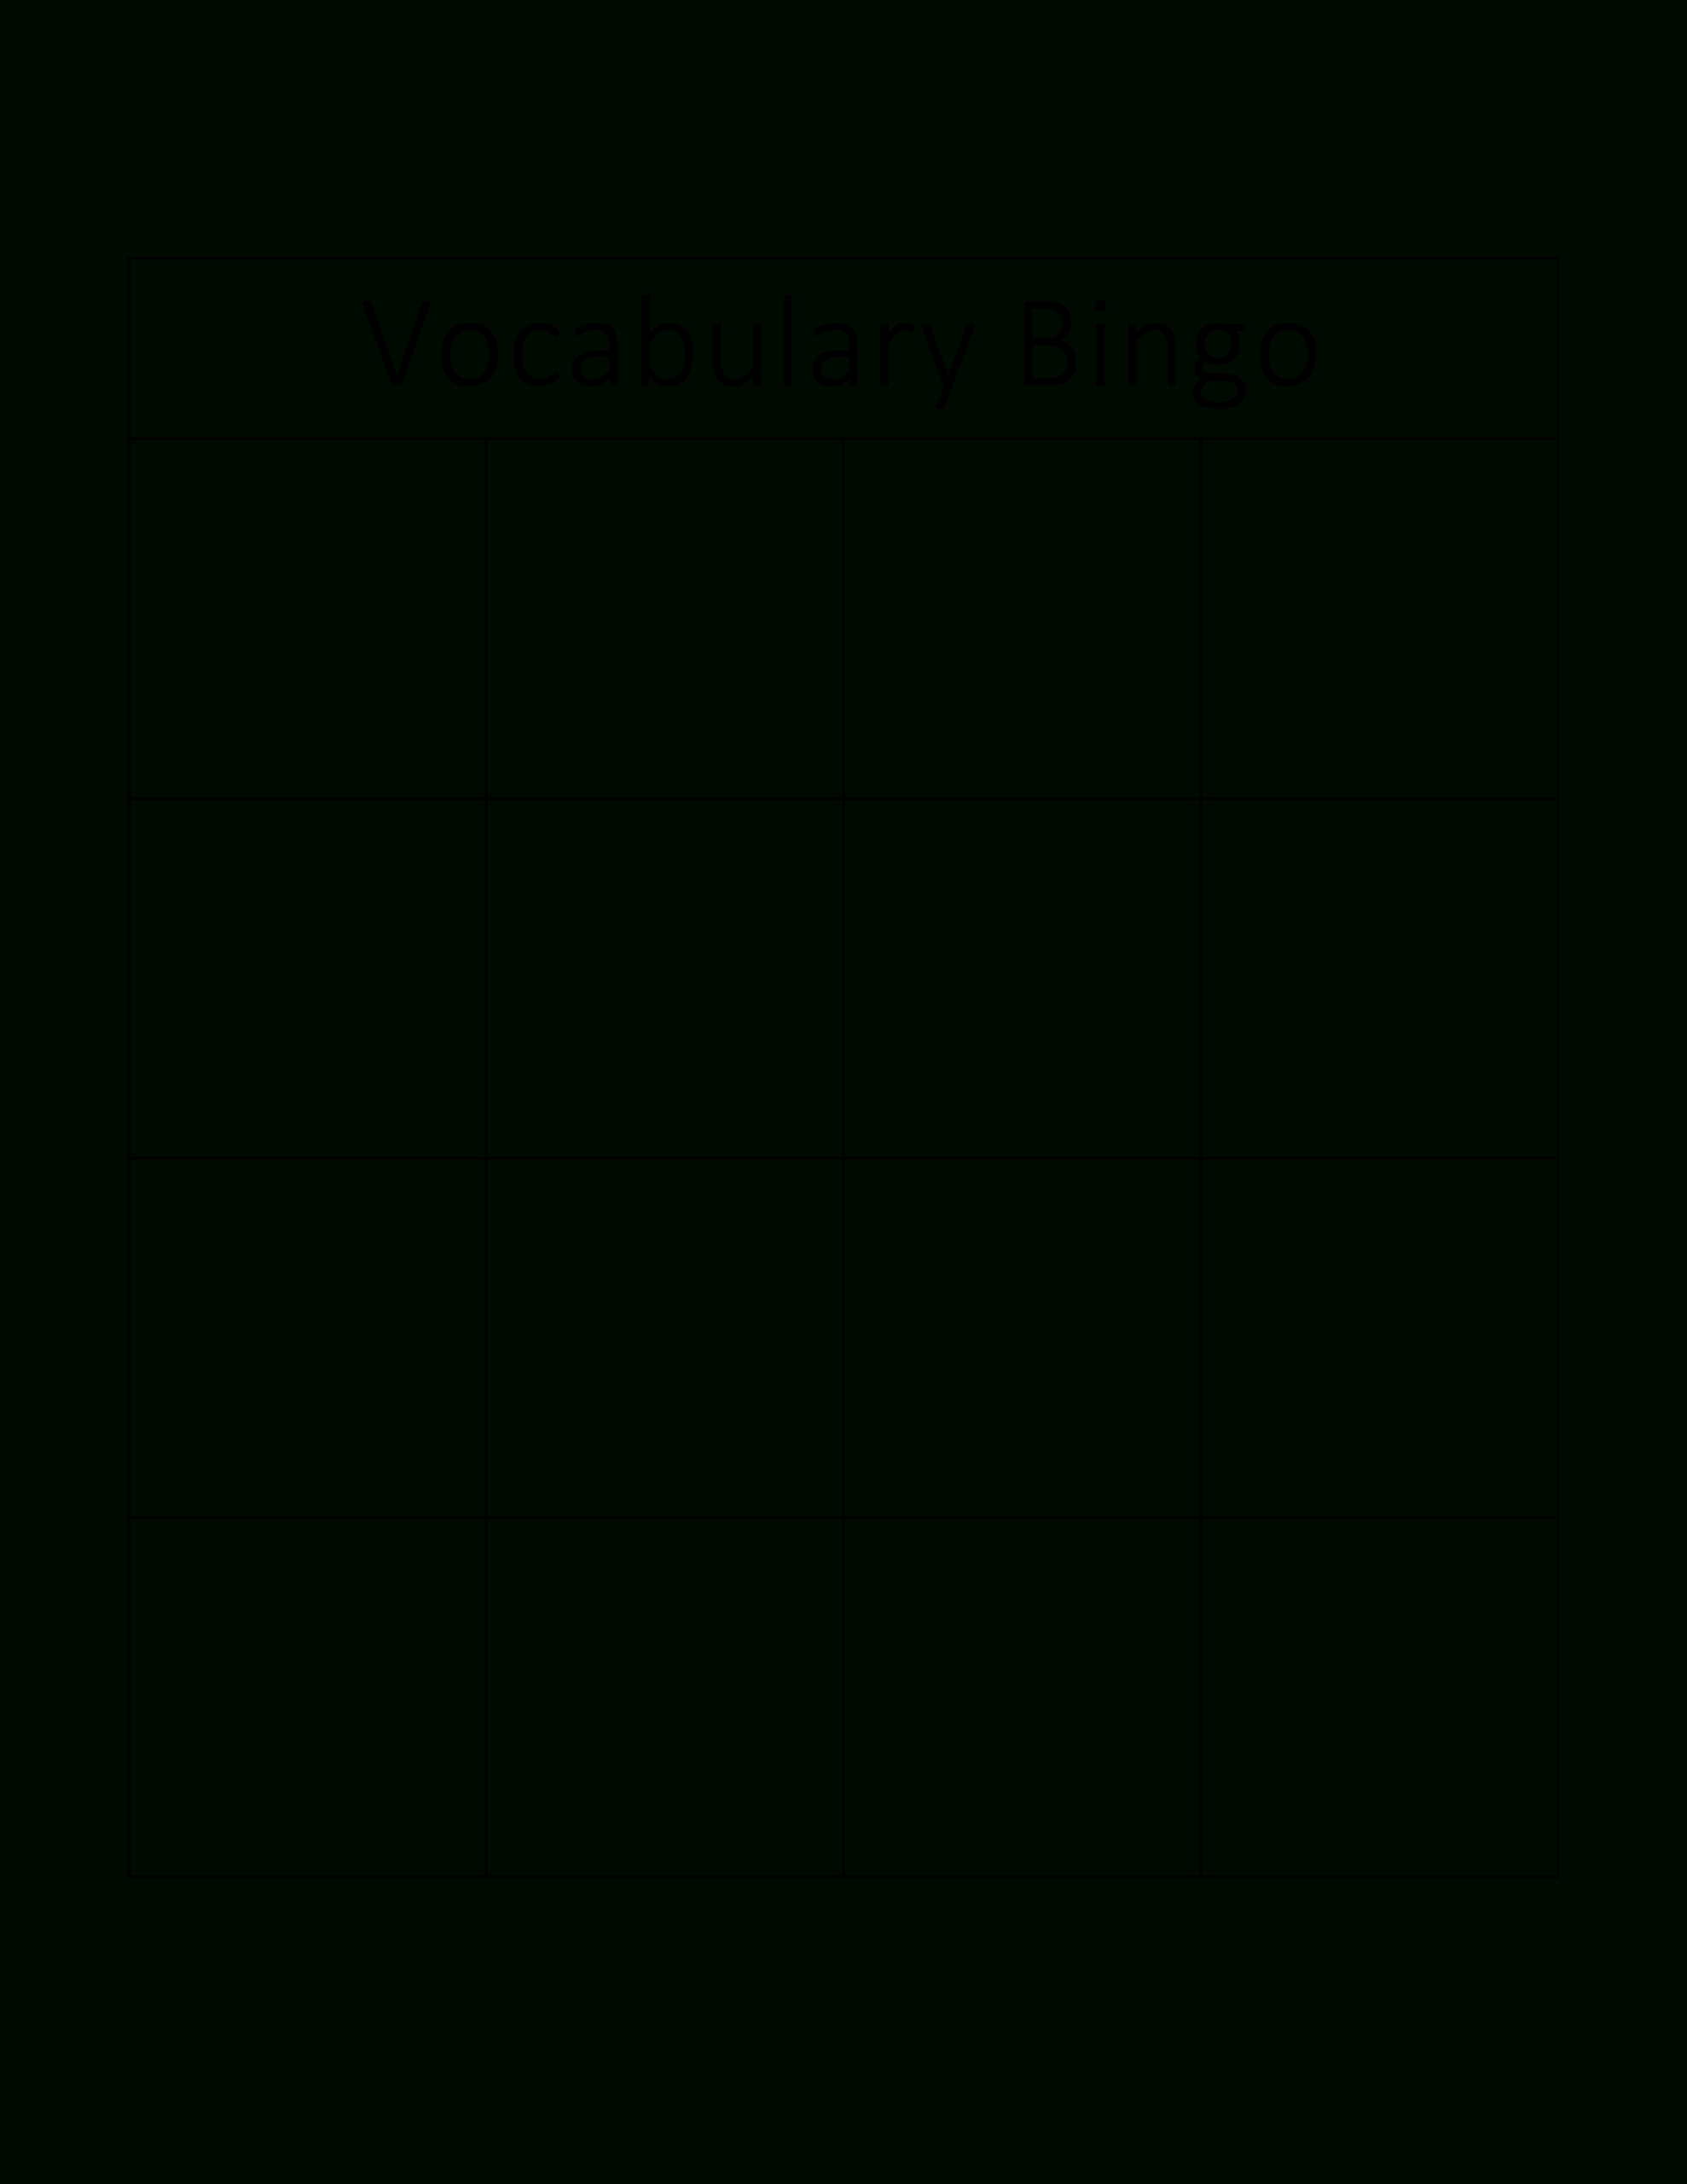 Vocabulary Bingo Card | Templates At Allbusinesstemplates For Bingo Card Template Word